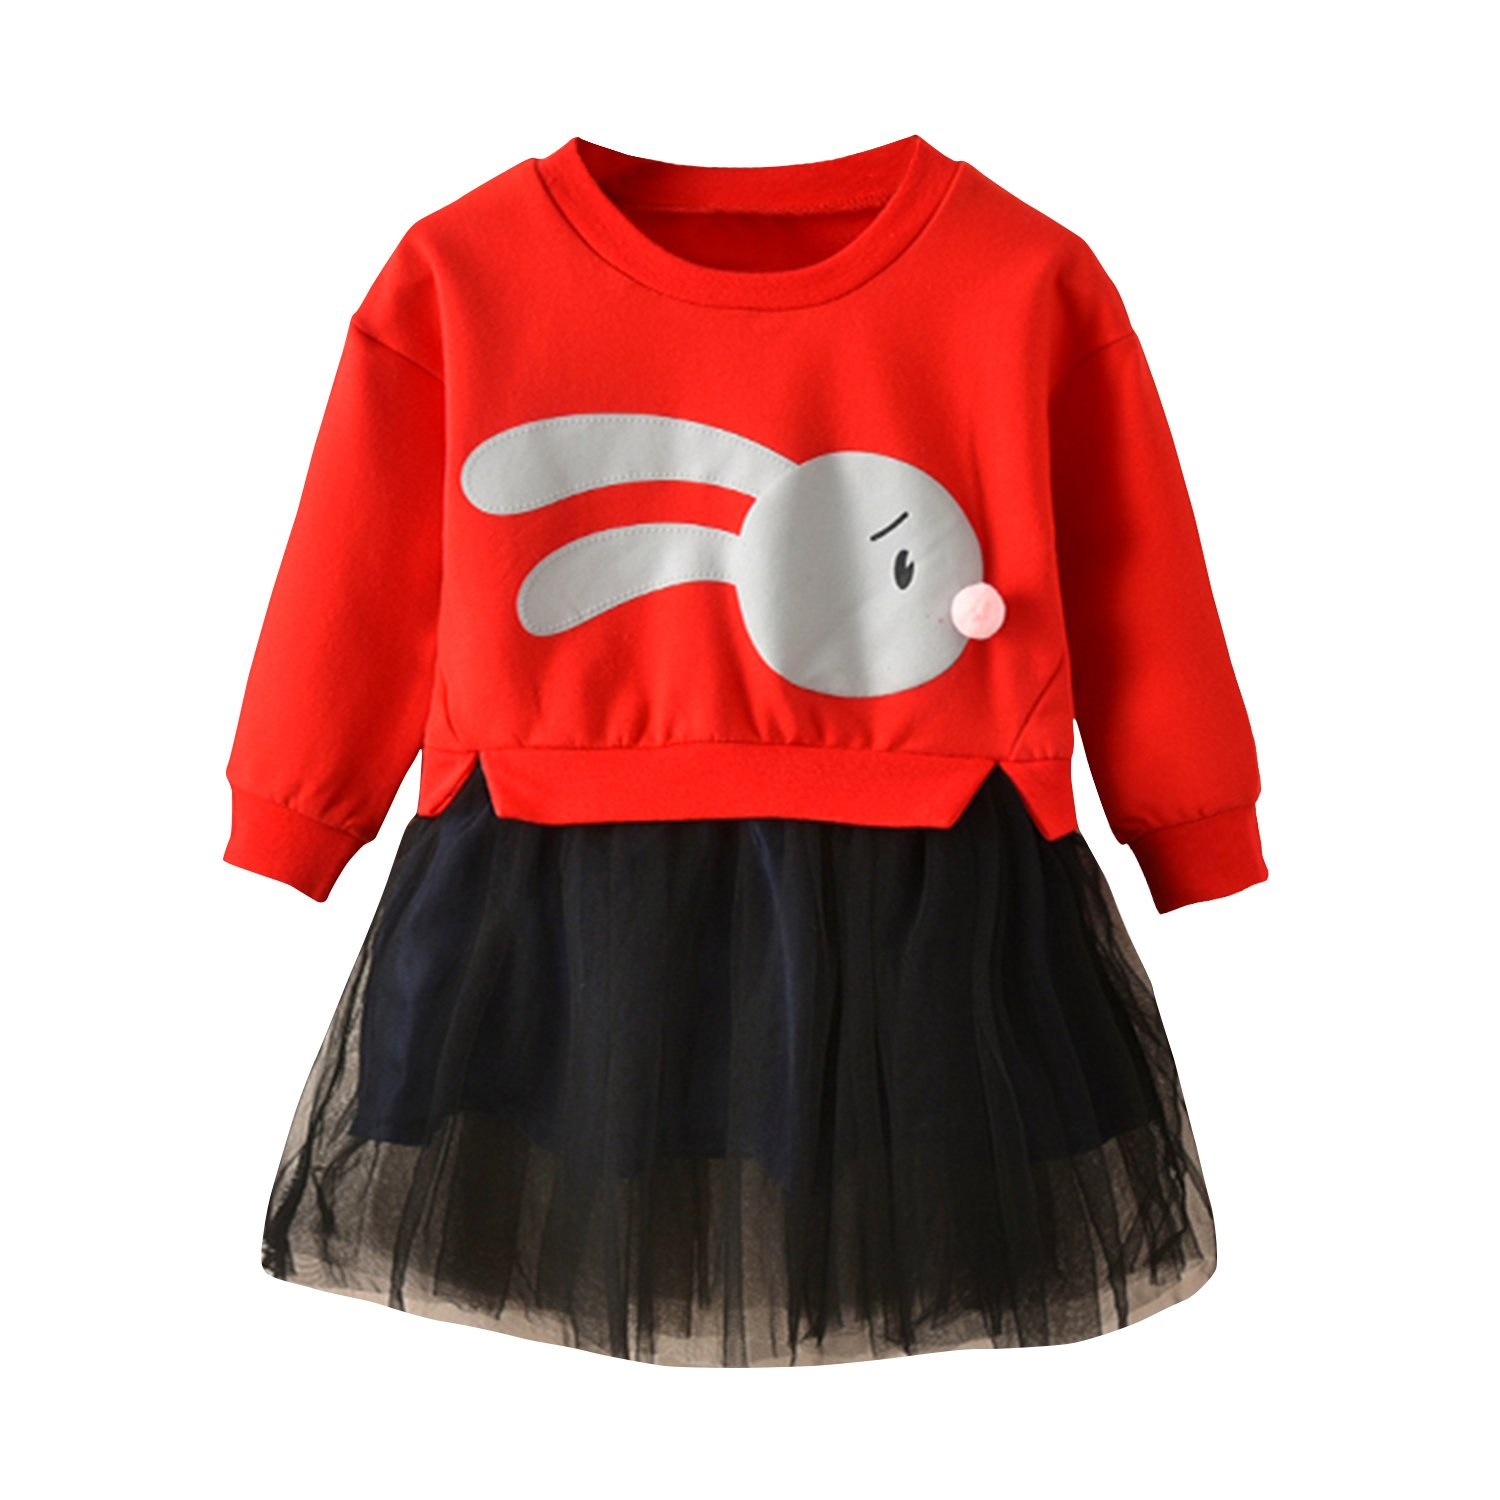 97e3aa5bd Design: Finished with sweet ultra-soft cotton cute bunny-adorned print,  ribbed appliques print cotton outfit costume, fit for sweet girls.